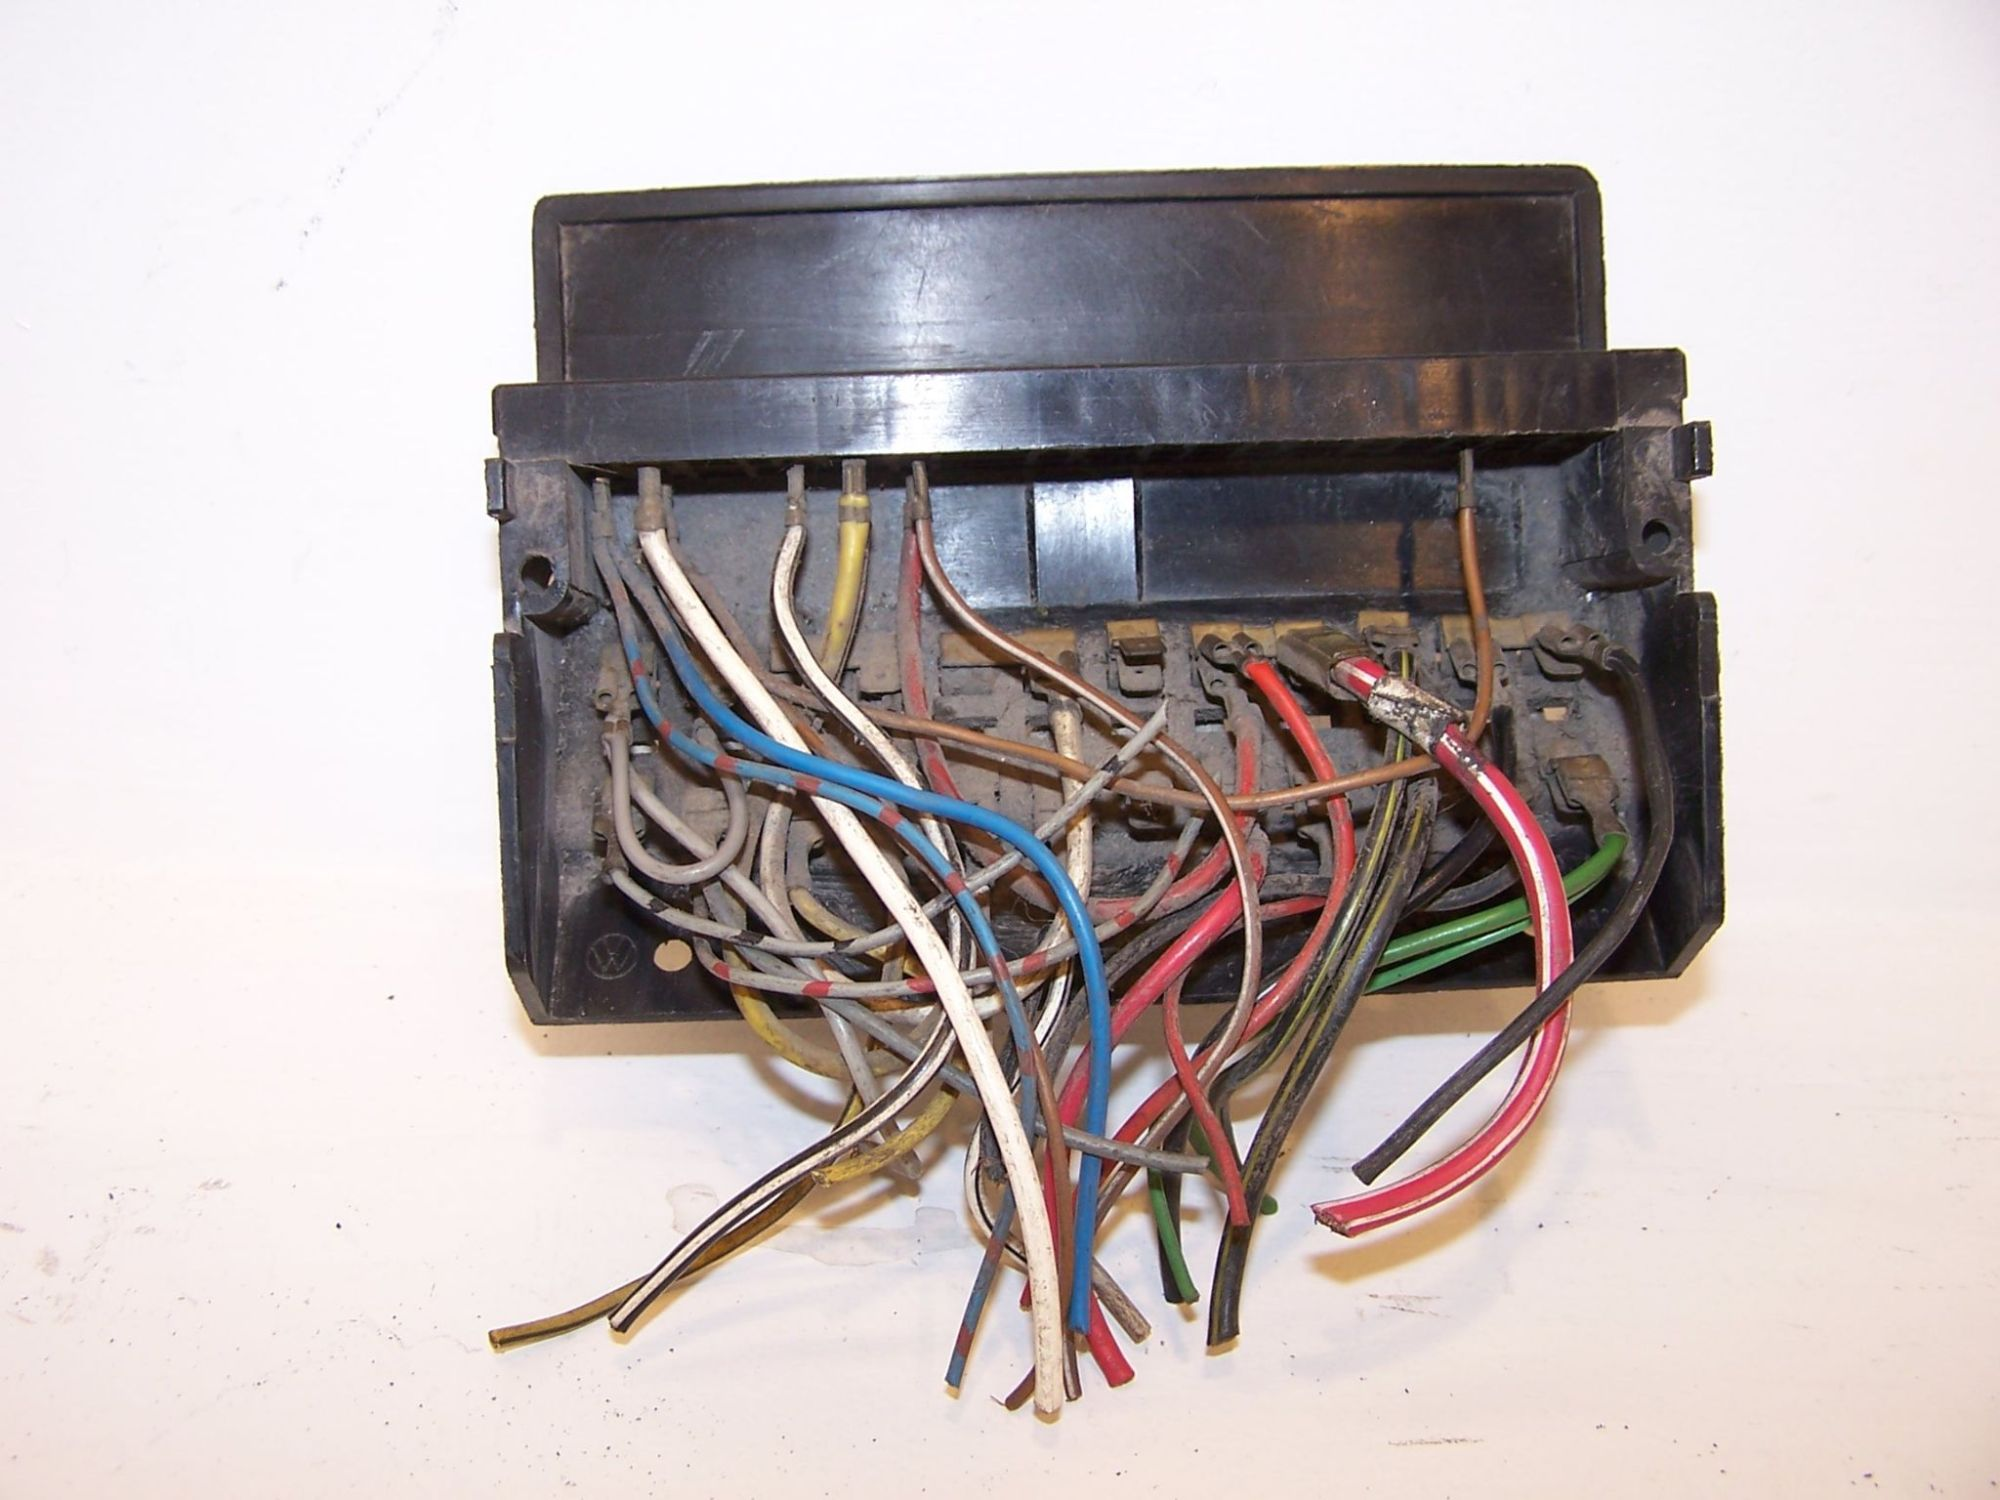 hight resolution of 1974 vw fuse box wiring diagram img1974 vw fuse box